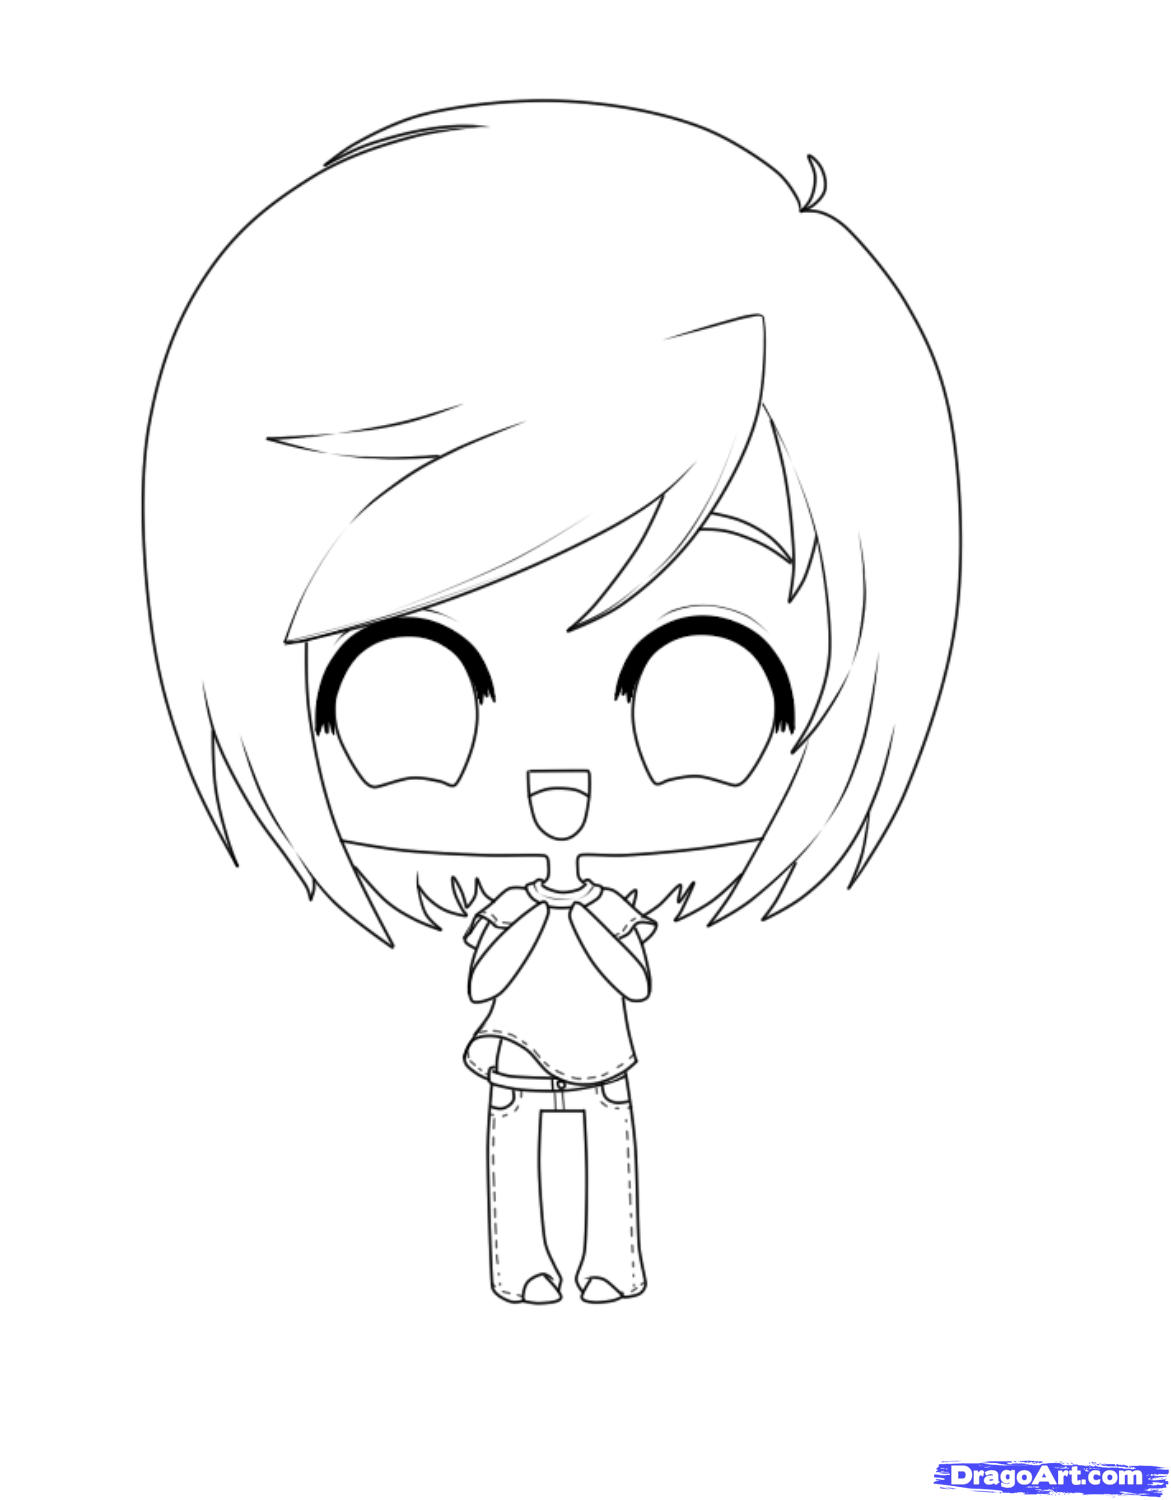 Anime Cartoon Drawing At Getdrawings Com Free For Personal Use